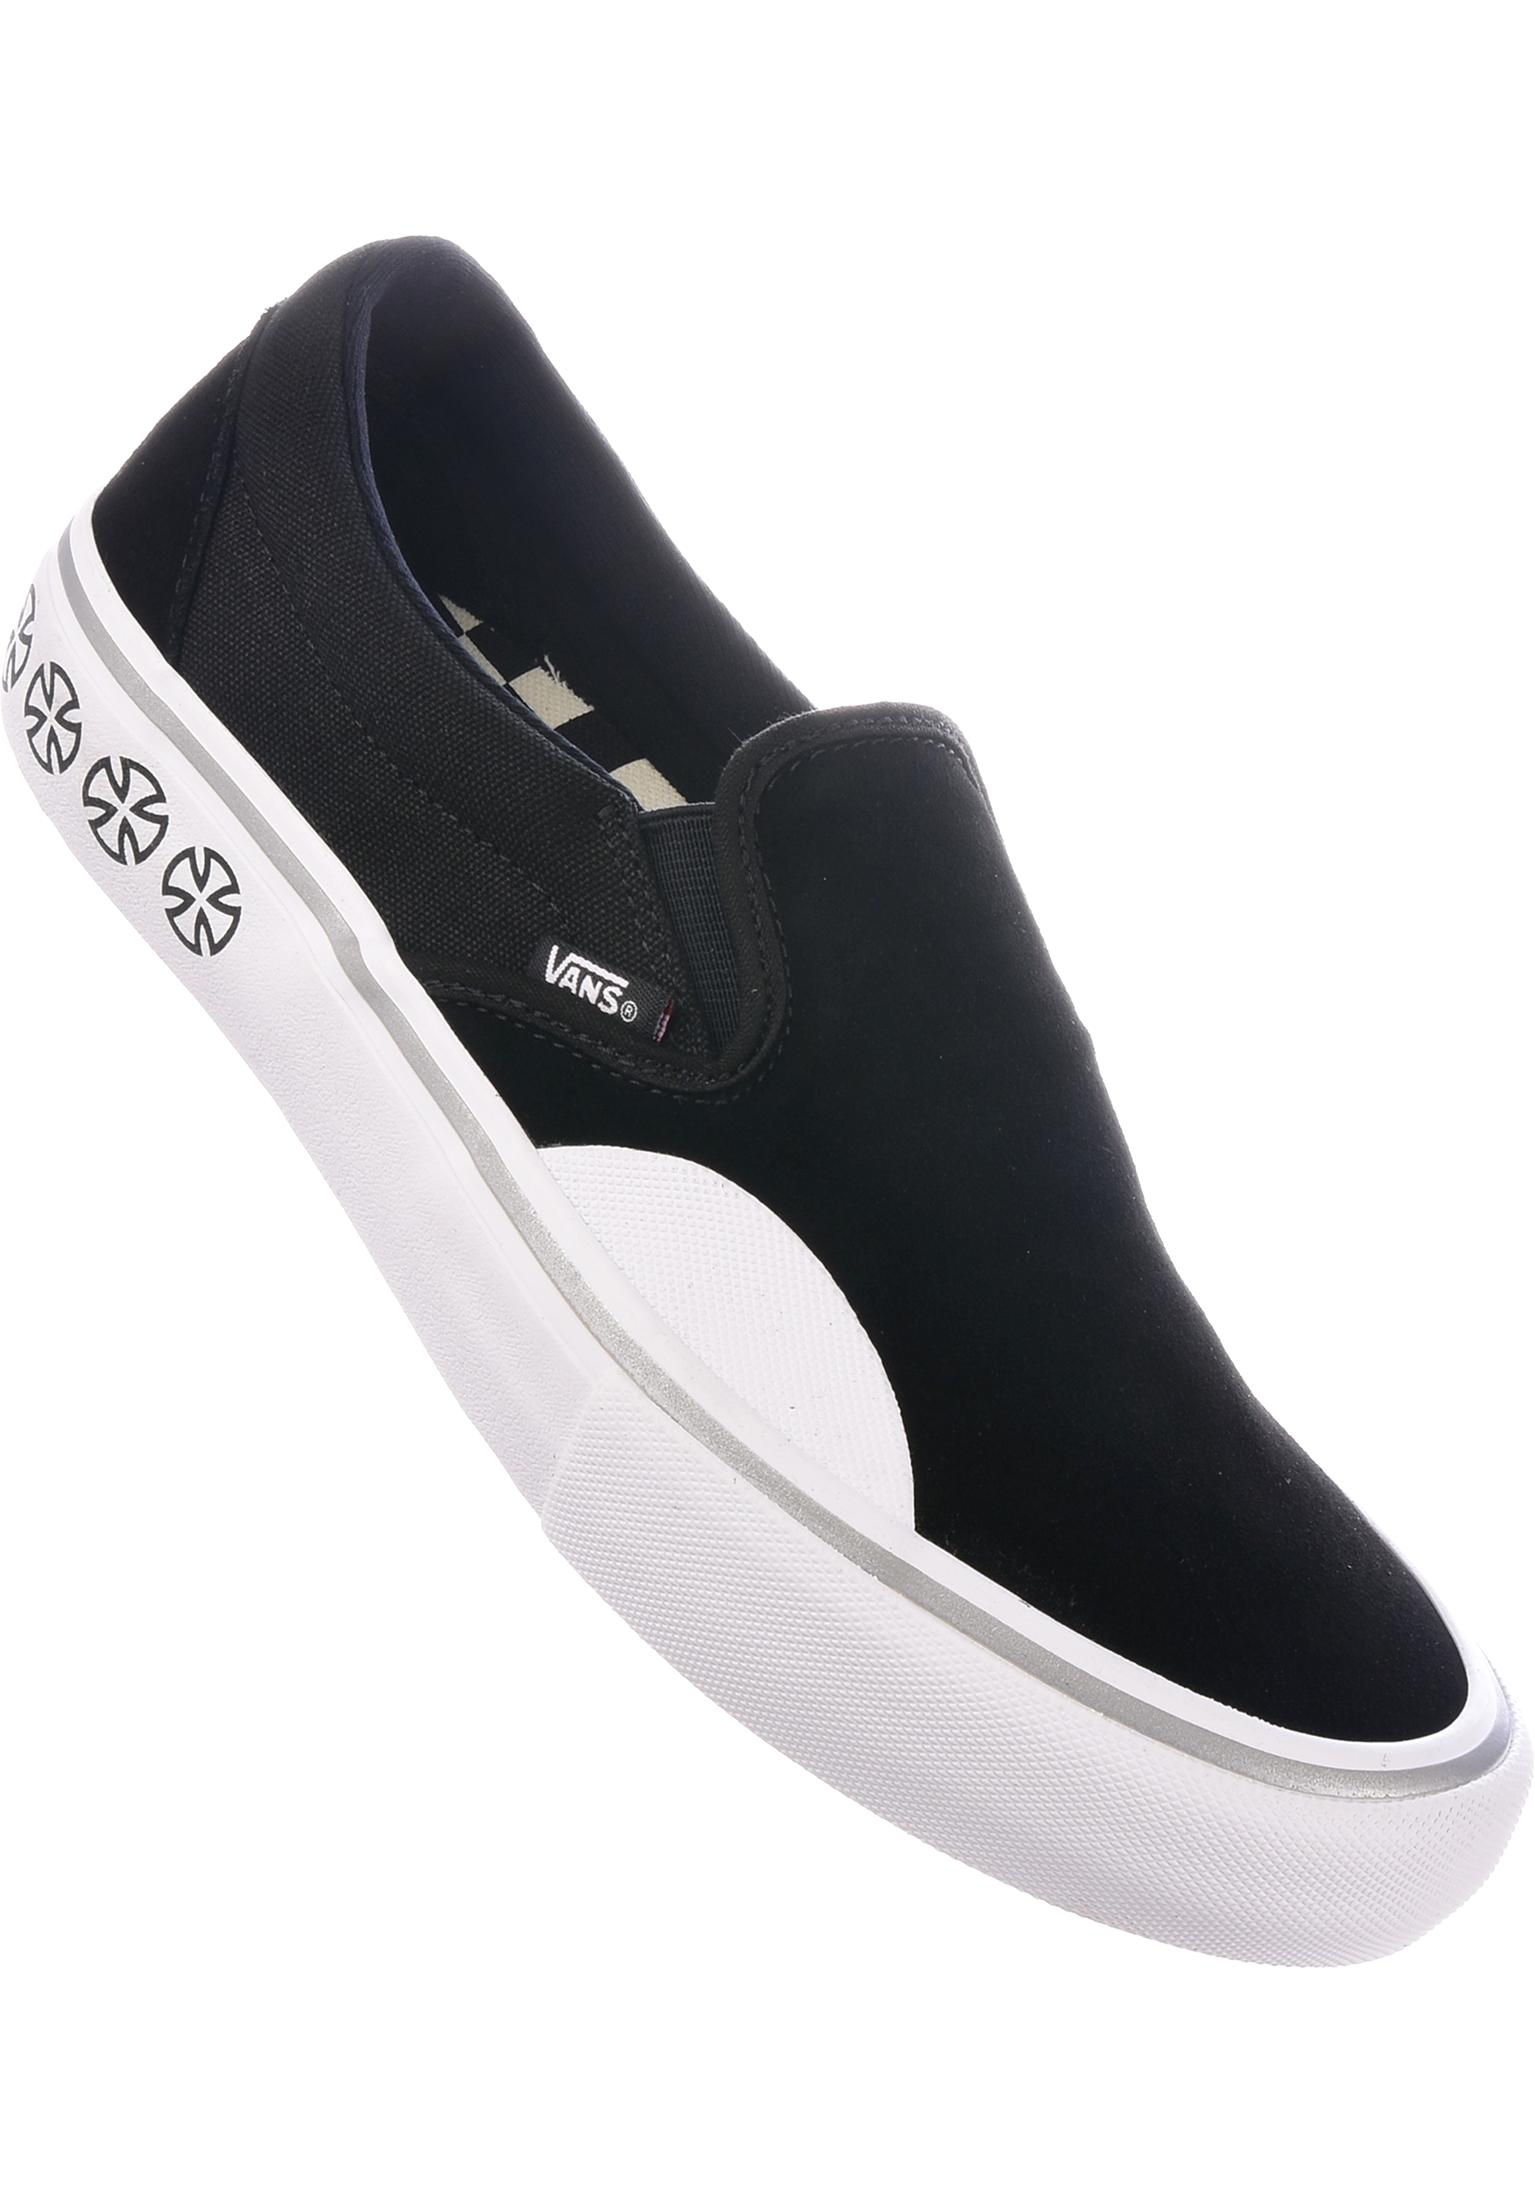 Titus_Muenchen_vans-schuhe-jungs-slip-on-pro-x-independent-independent-black-0604460.jpg